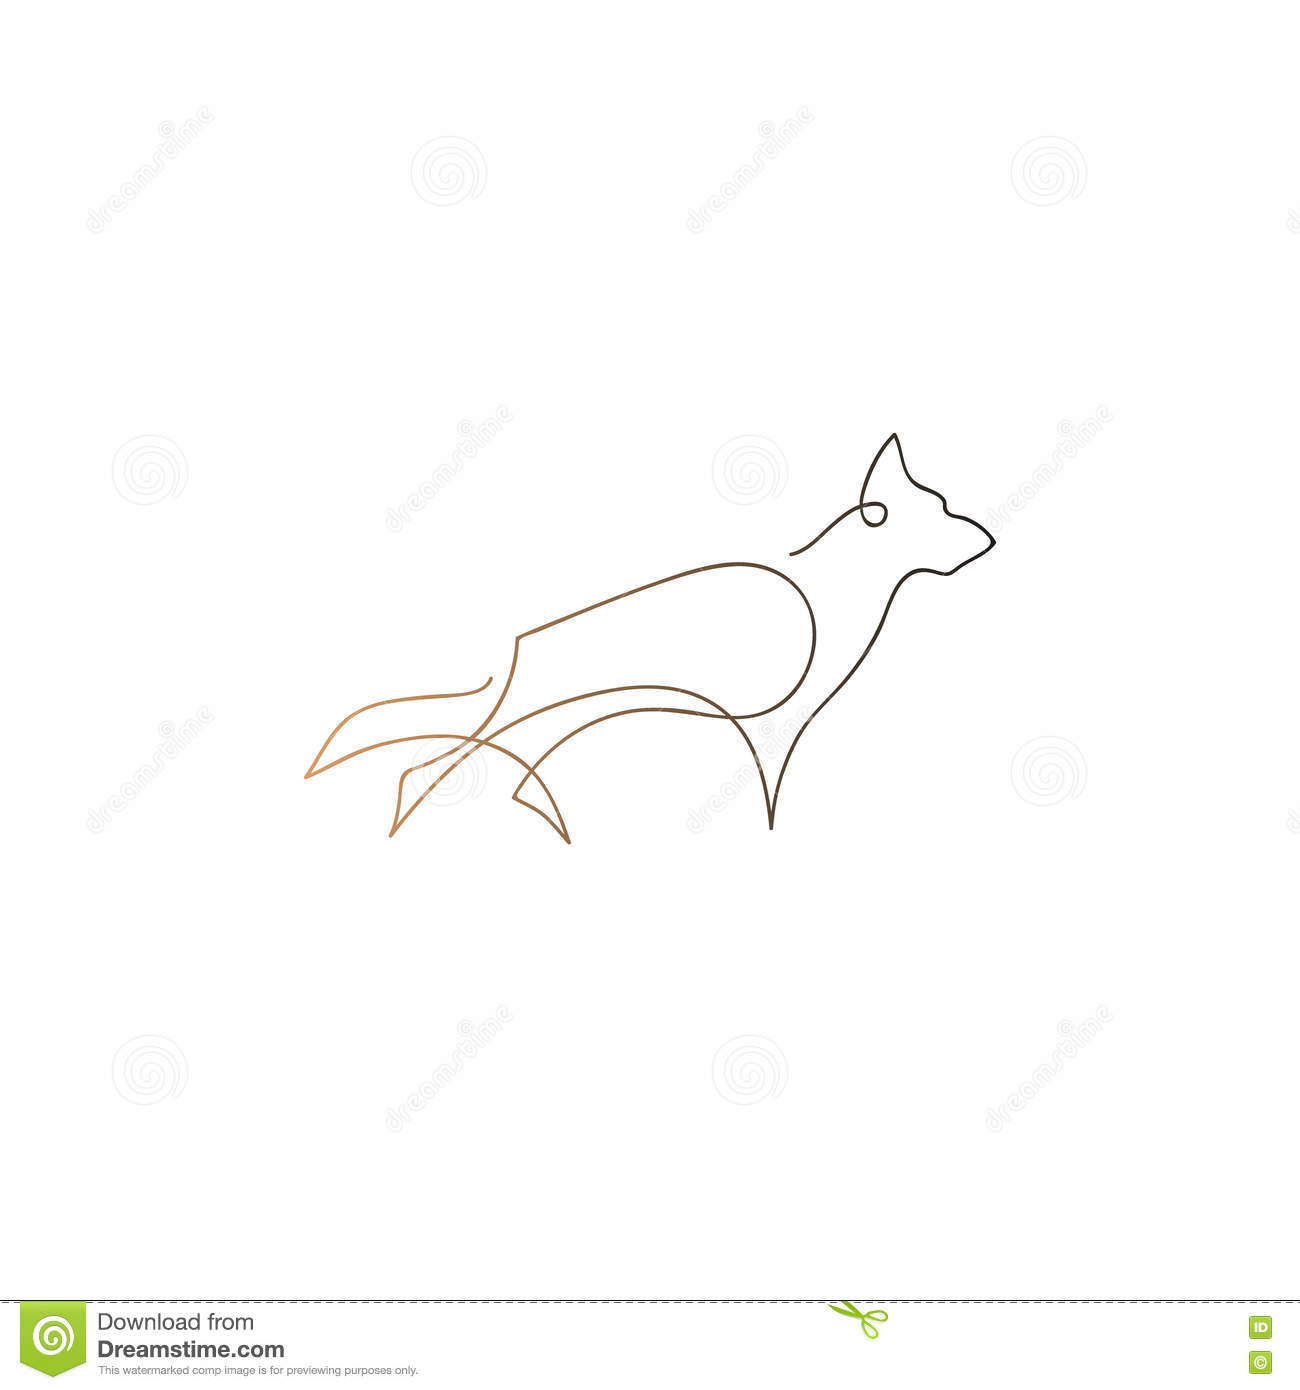 One Line Design : One line dog design silhouette german shepherd hand